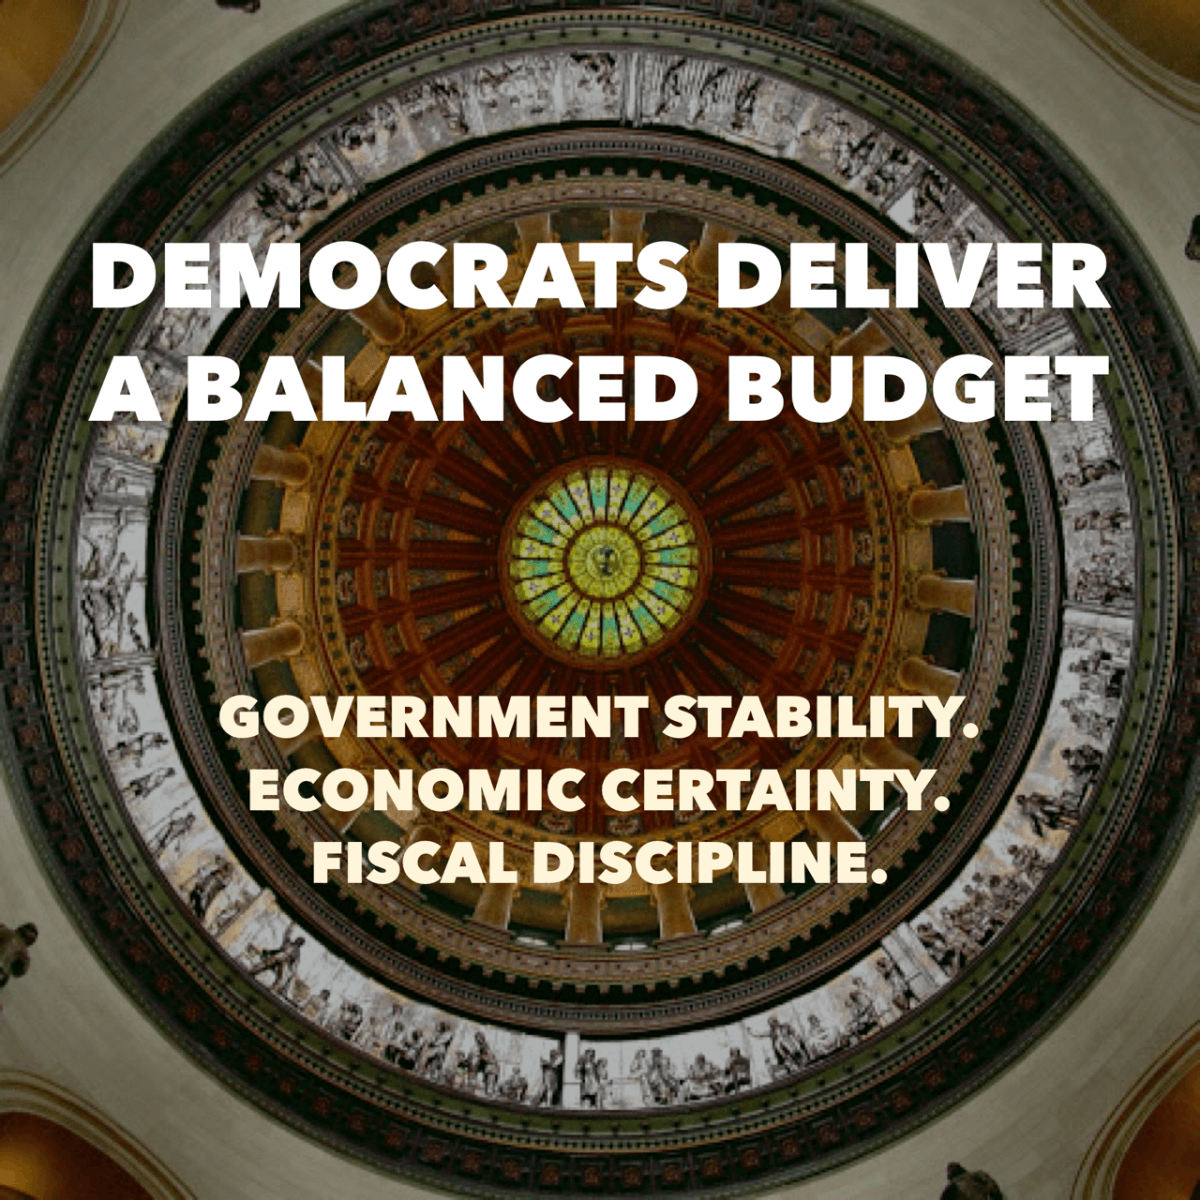 DEMOCRATS CRAFT A DISCIPLINED BALANCED BUDGET